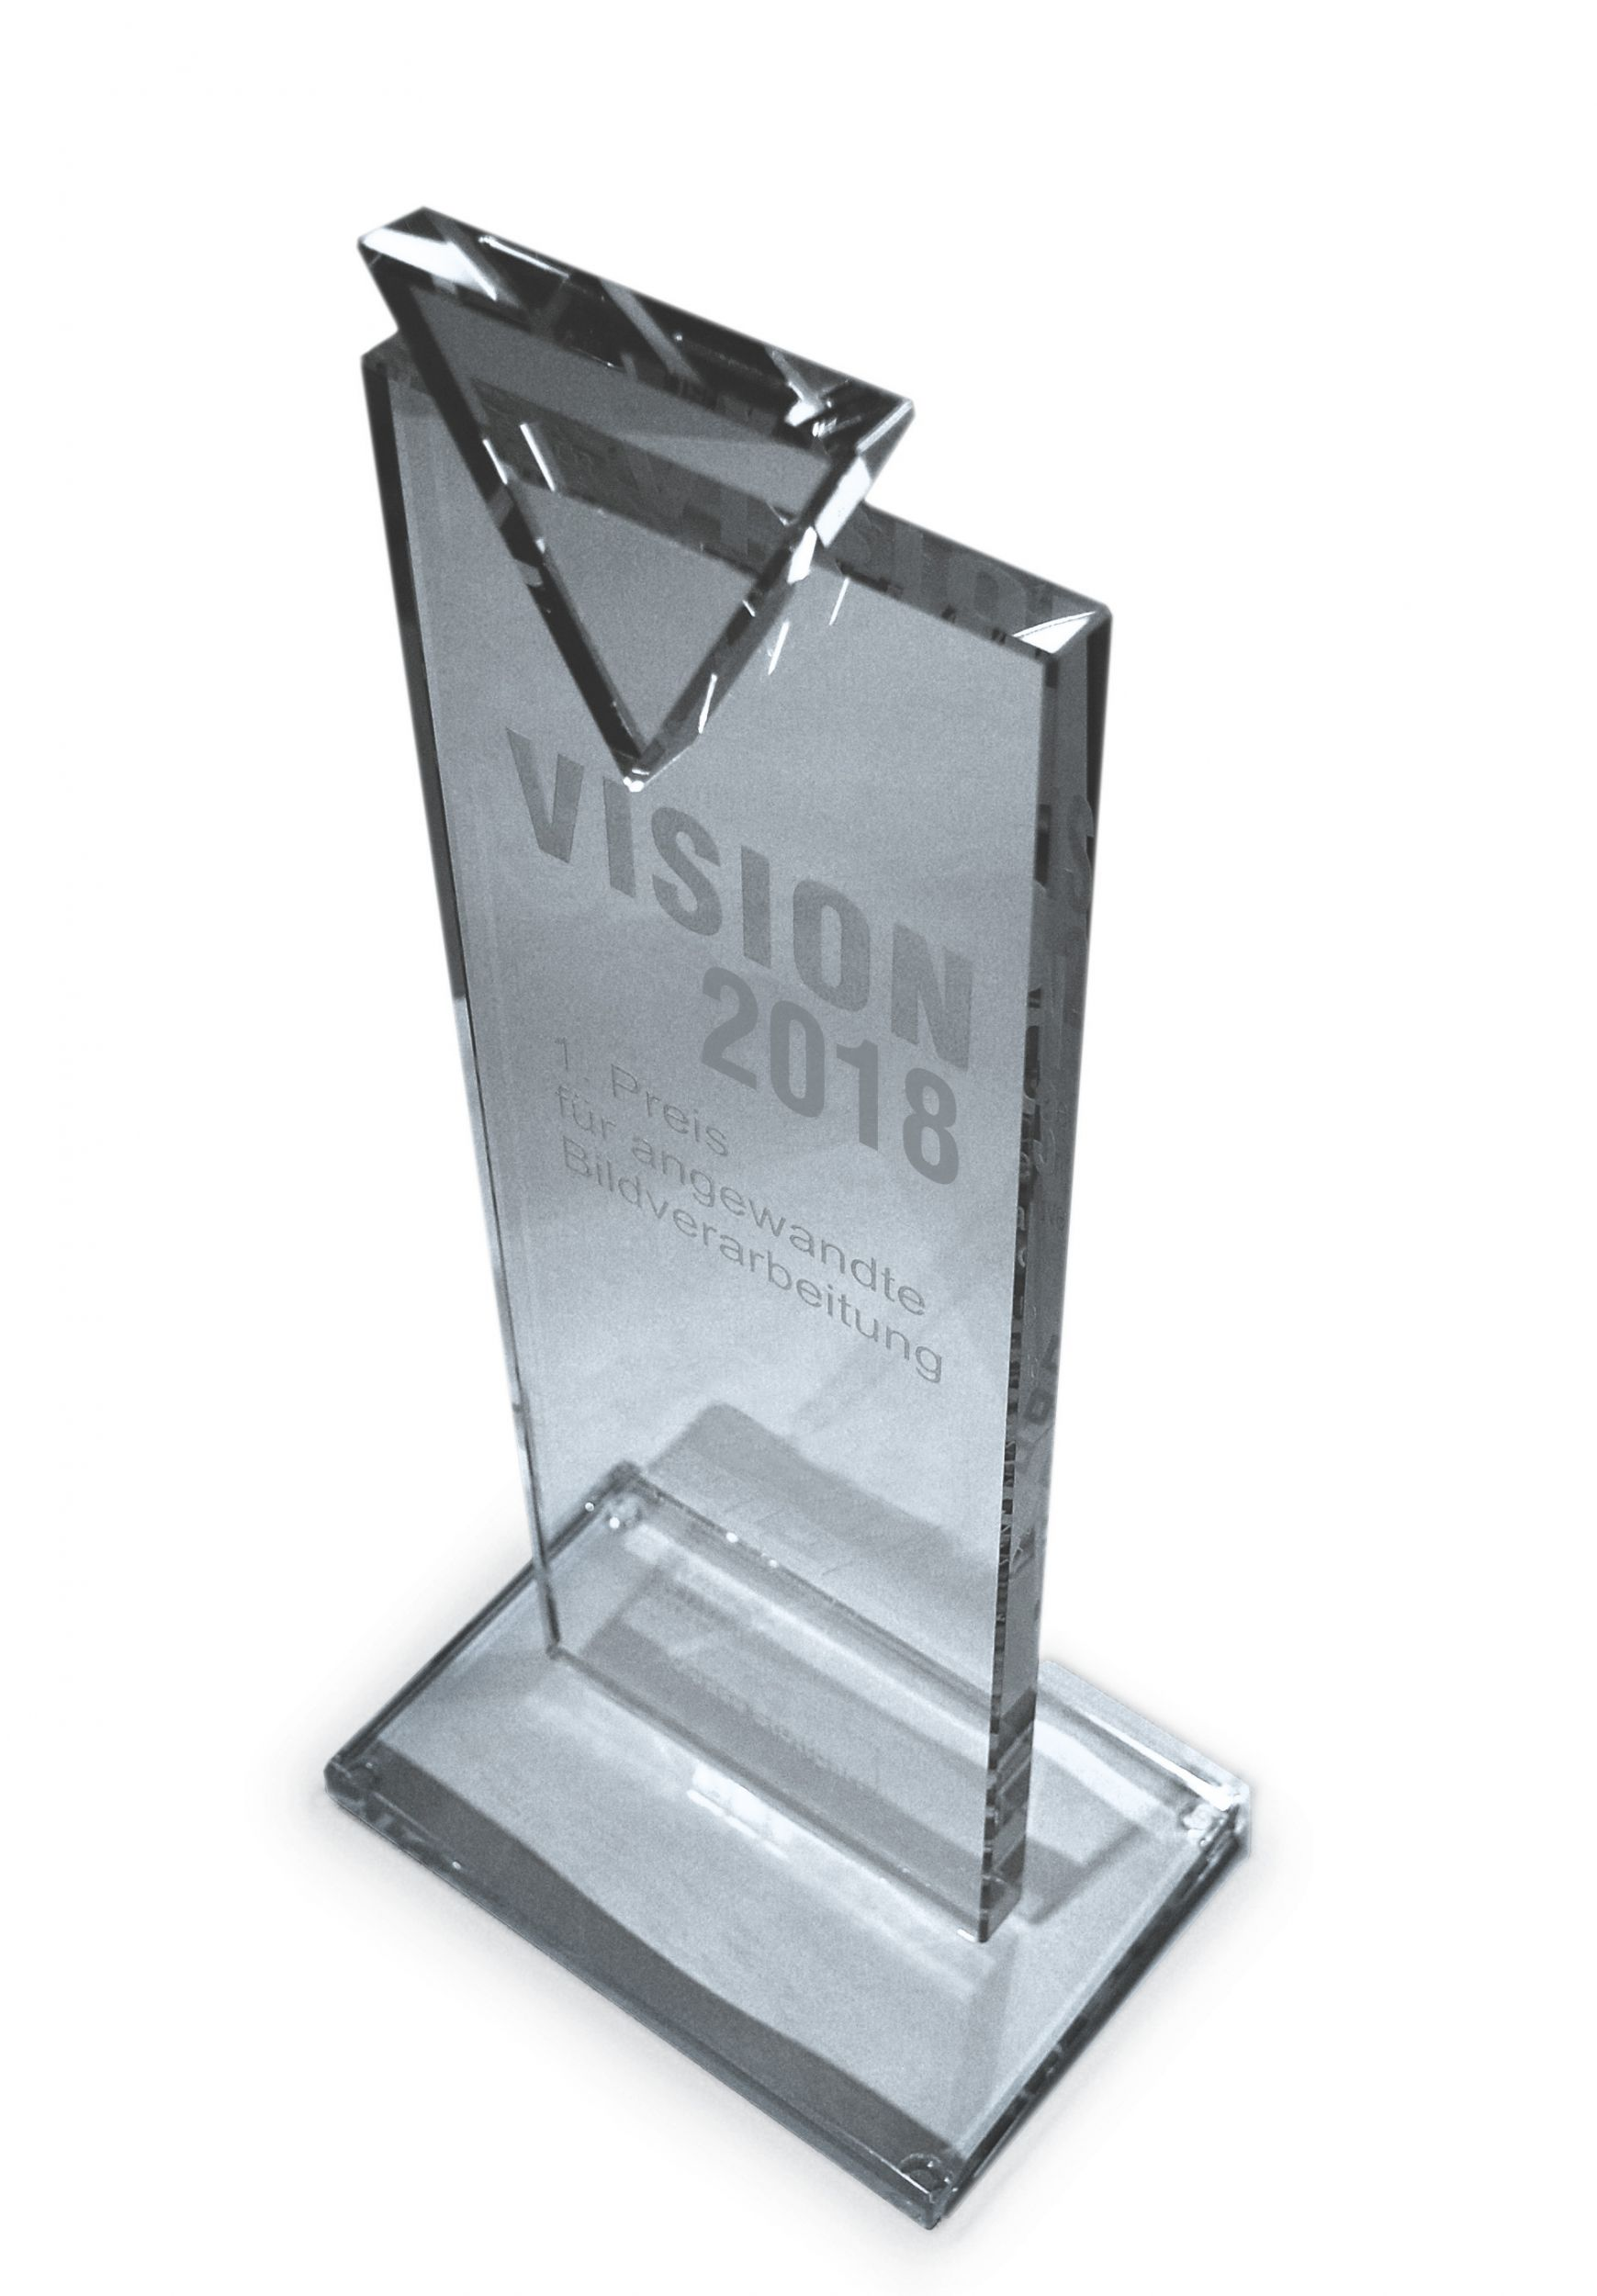 Vision Award 2018: Call for Papers